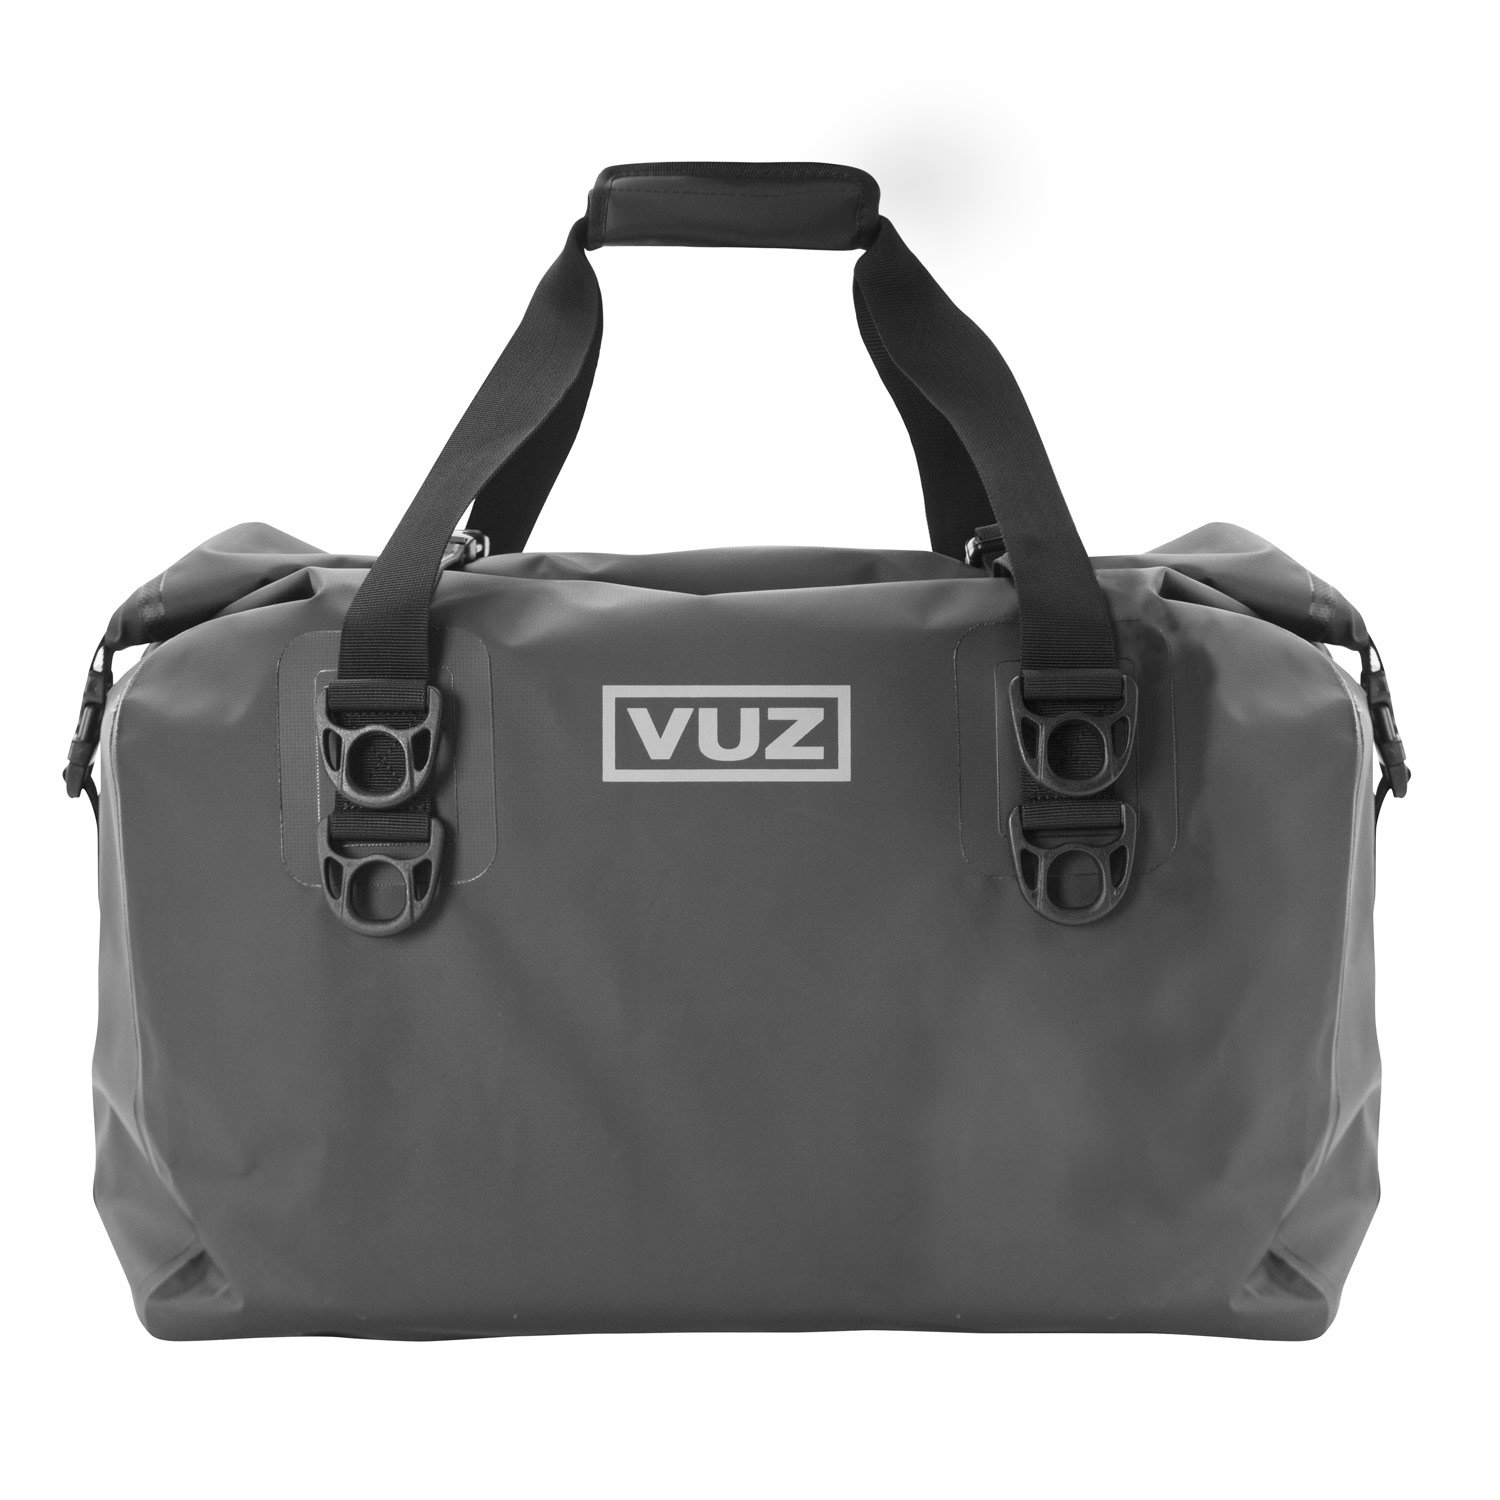 VUZ Moto Dry Duffle Motorcycle Tail Bag, Waterproof Motor-Bike Luggage, 45-Liters